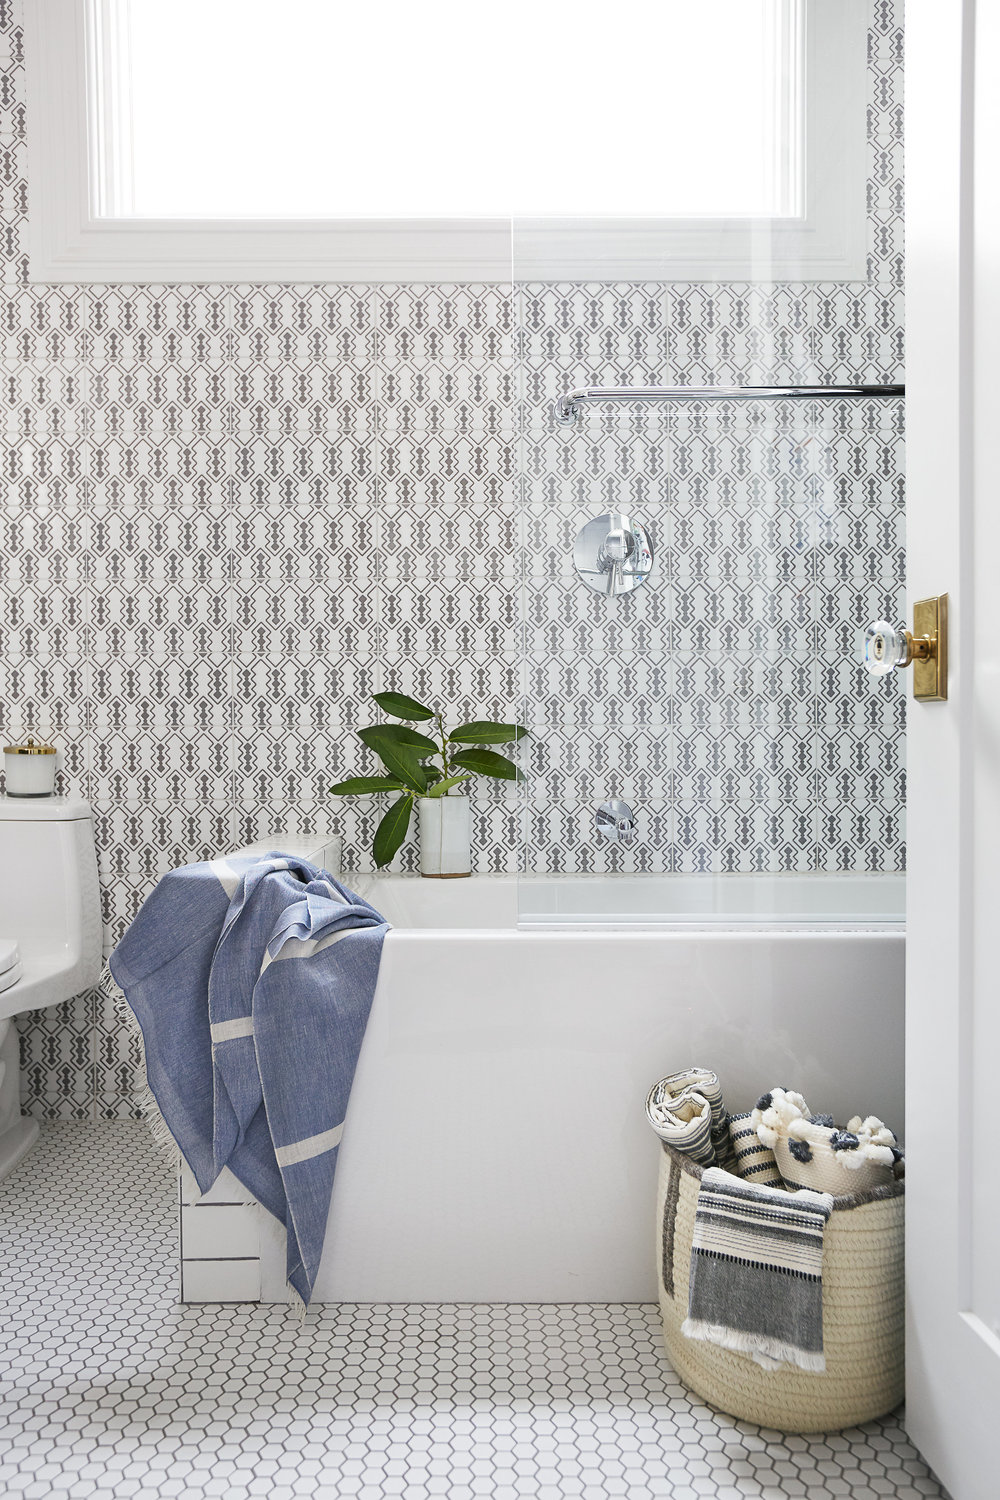 Lauren Nelson Design // California St Home // Powder Room